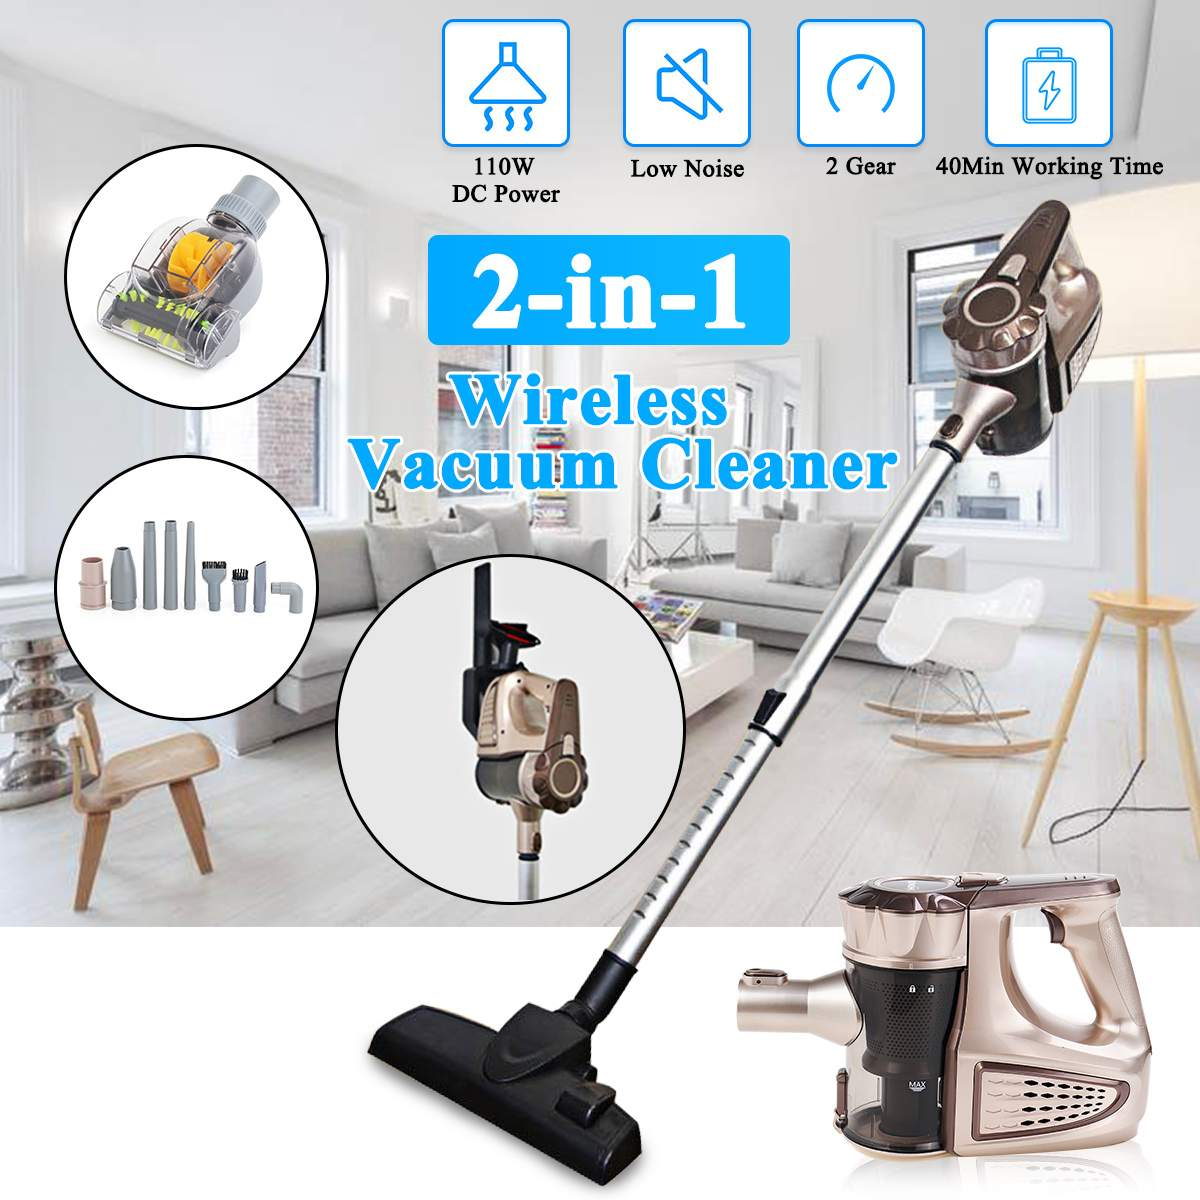 Portable 2 In 1 Handheld Cordless Vacuum Cleaner Portable Wireless Cyclone Filter Carpet Sweep Dust Collector With removing mitePortable 2 In 1 Handheld Cordless Vacuum Cleaner Portable Wireless Cyclone Filter Carpet Sweep Dust Collector With removing mite